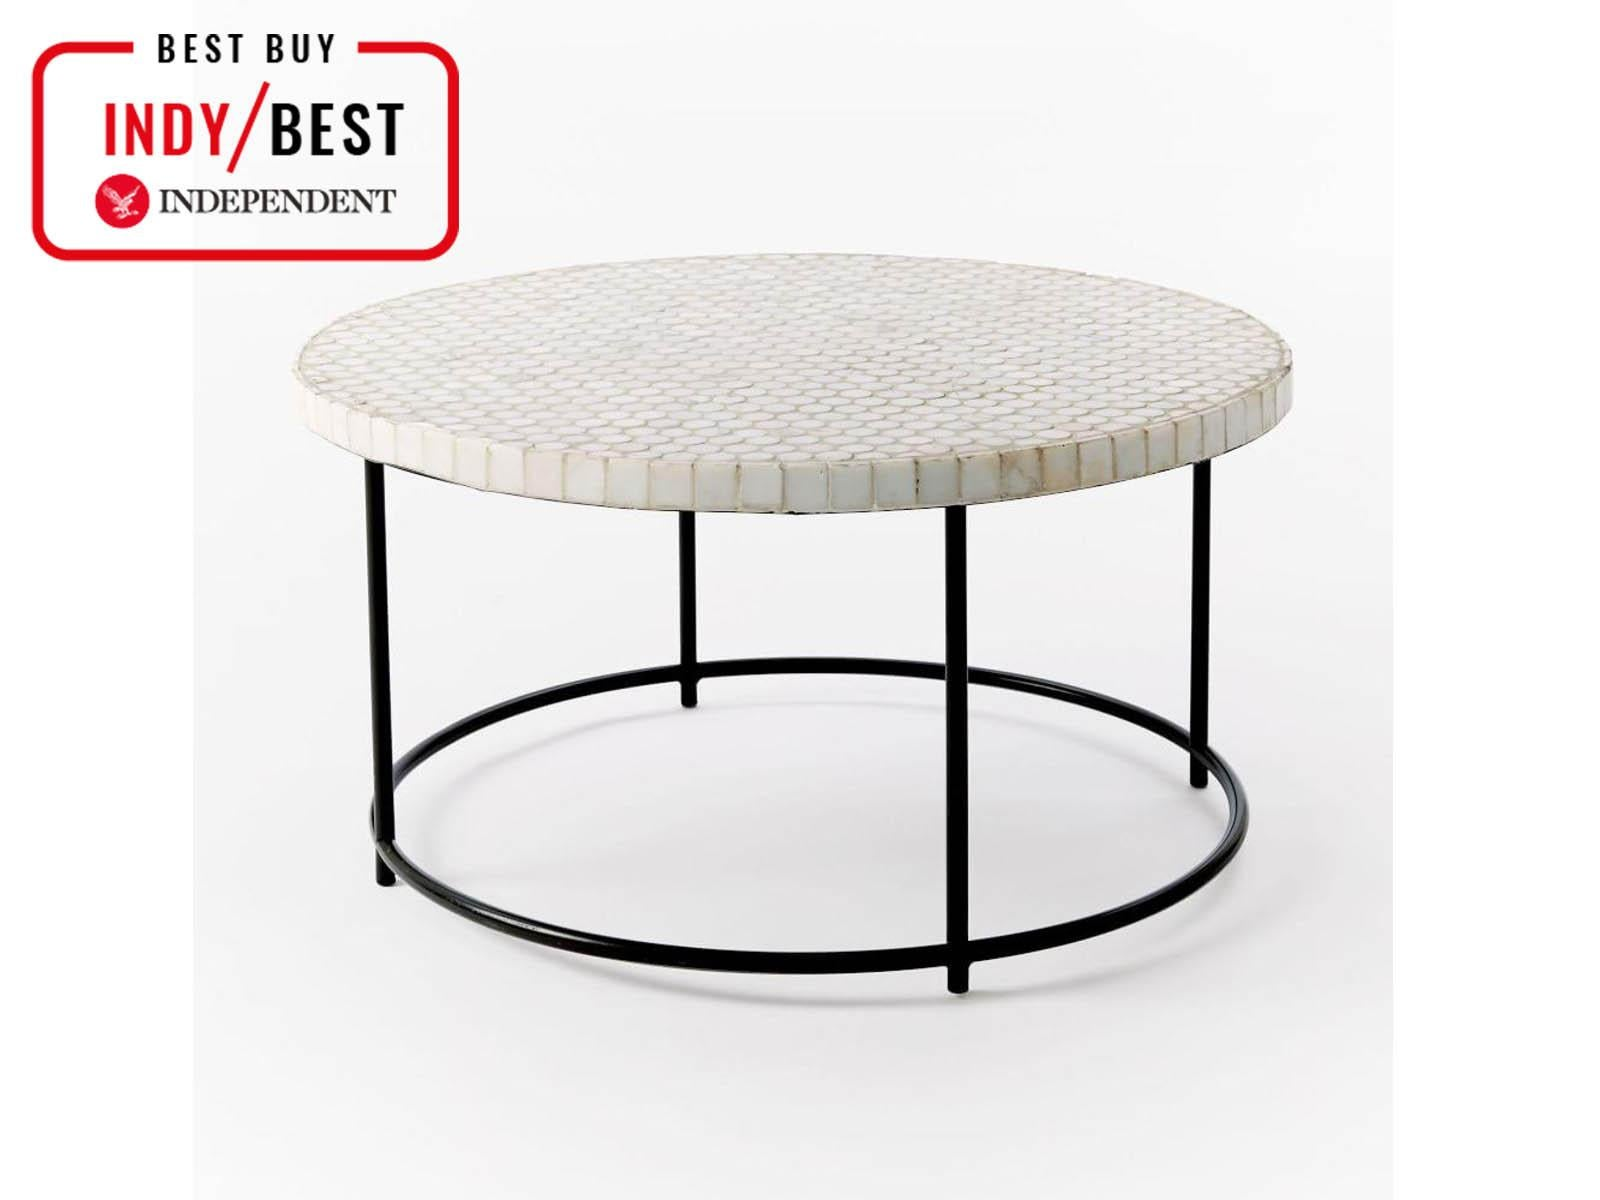 Best Outdoor Table That Is Weatherproof Easy To Clean And Durable